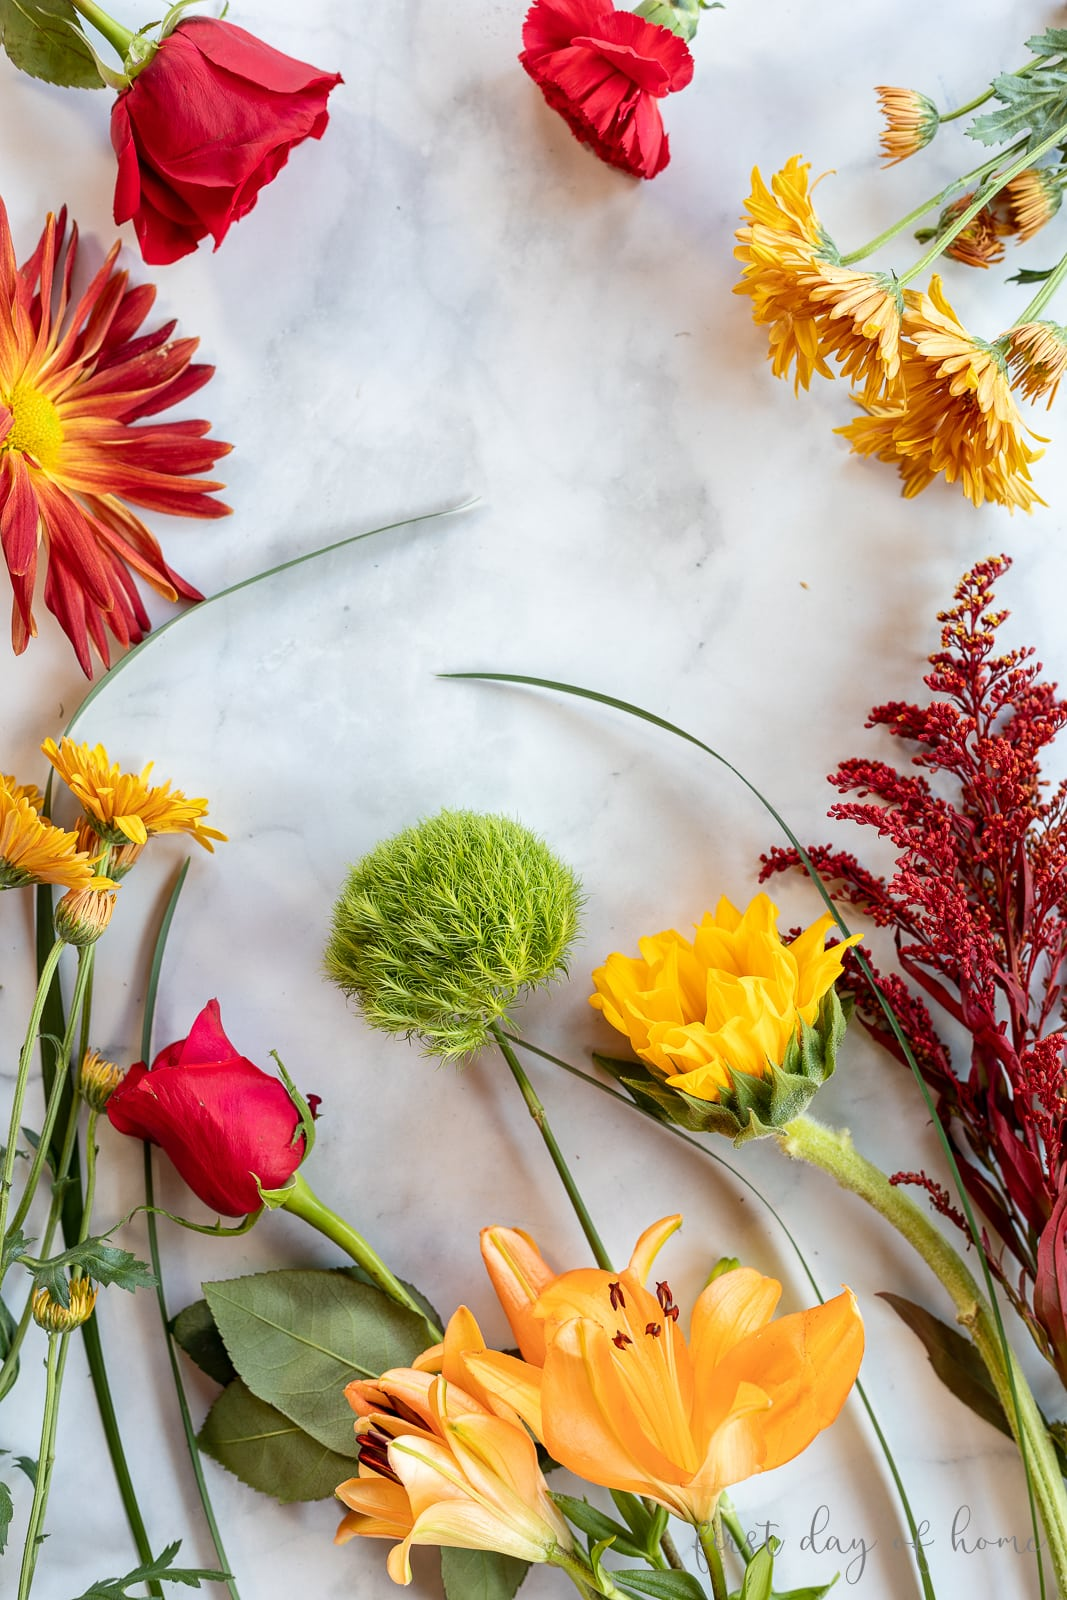 Fresh flowers from grocery store in yellow, red, orange and green